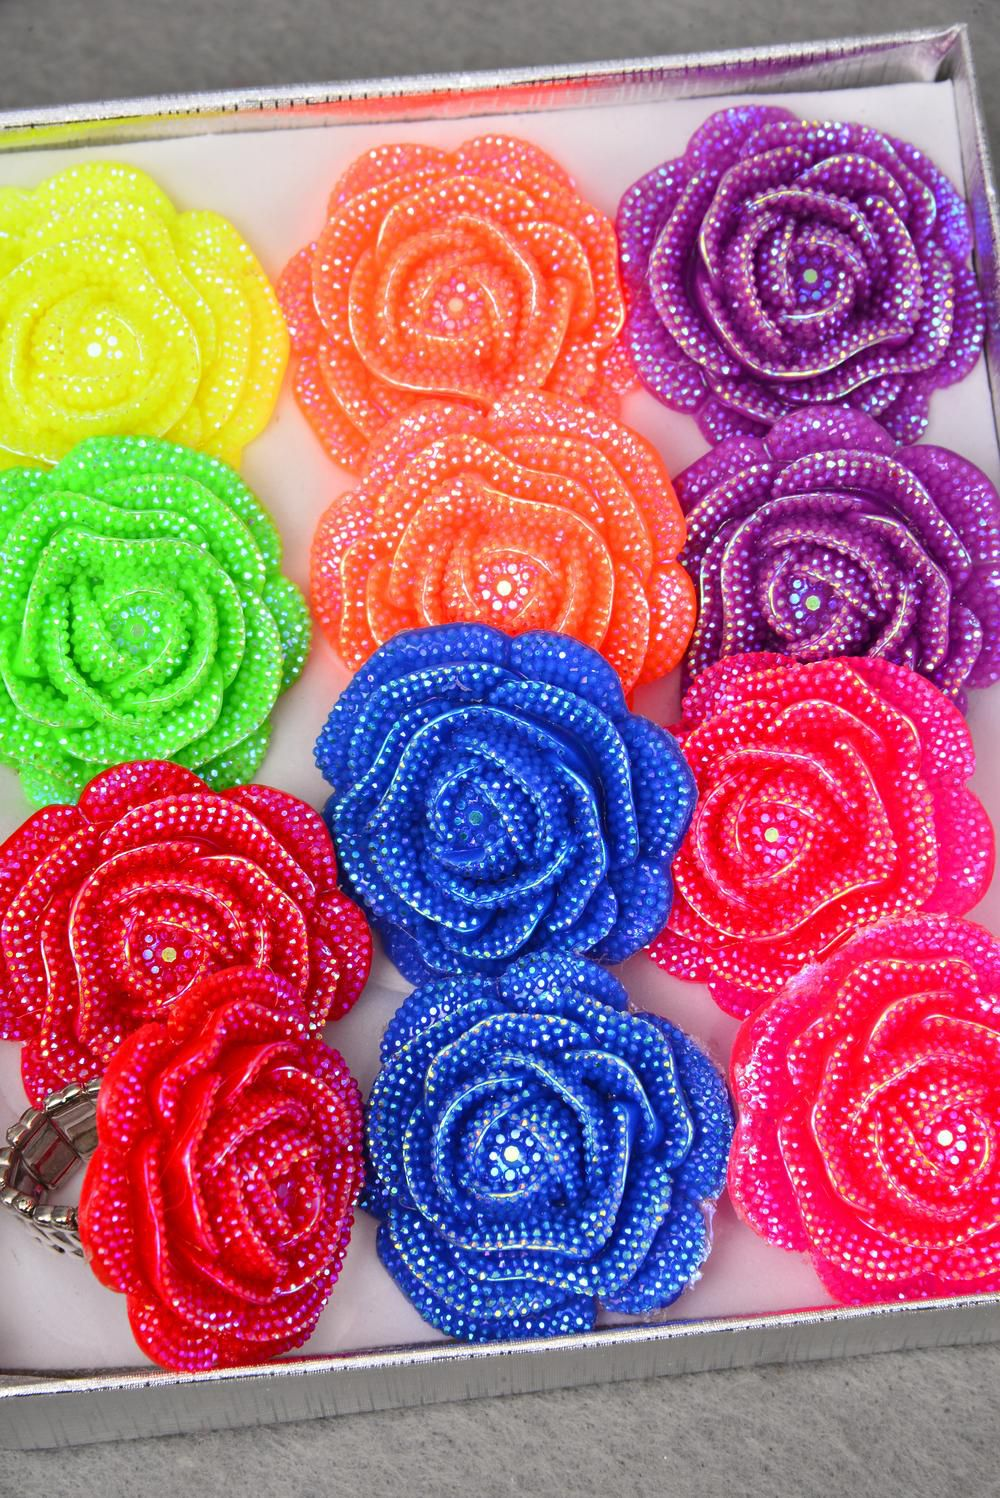 "Rings Poly Cluster Rose Stretch Multi/DZ **Stretch** Flower Size-1.25"" Wide,2 Red, 2 Blue,2 Fuchsia,2 Lavender,2 Orange,1 Yellow,1 Lime Mix"